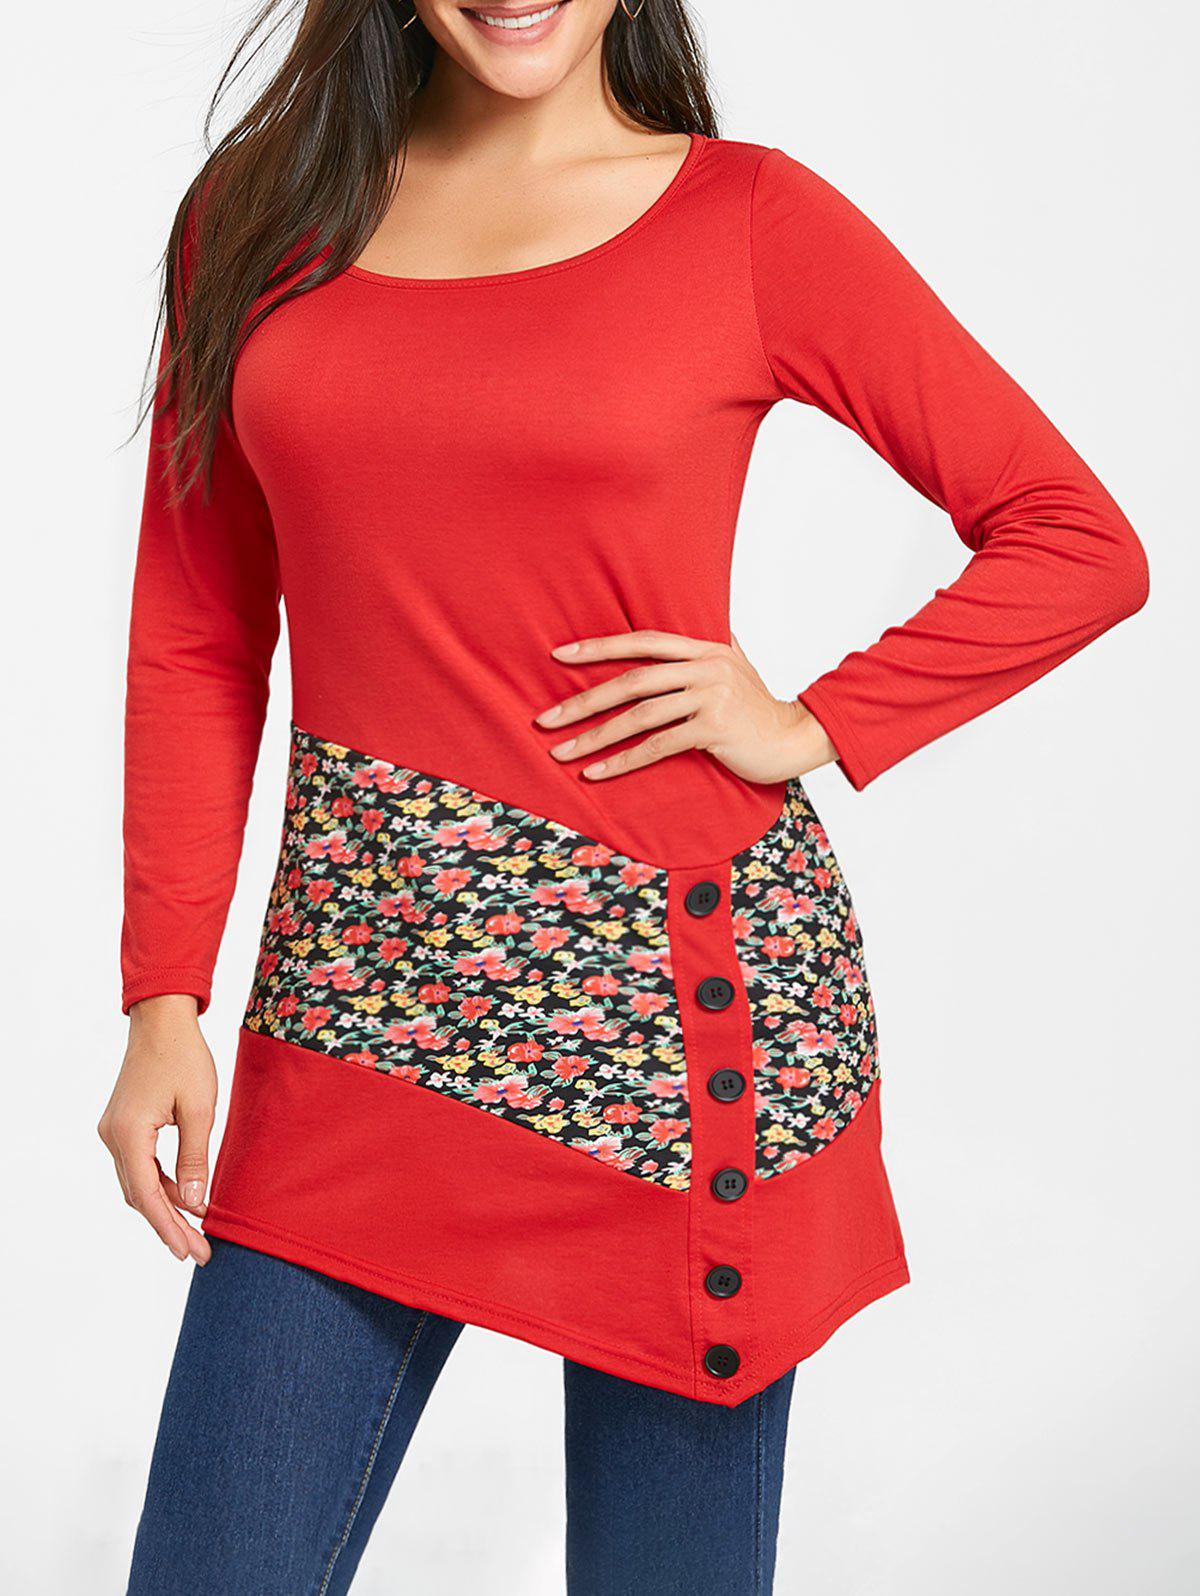 Sale Floral Panel Buttons Long Sleeve Tunic Top